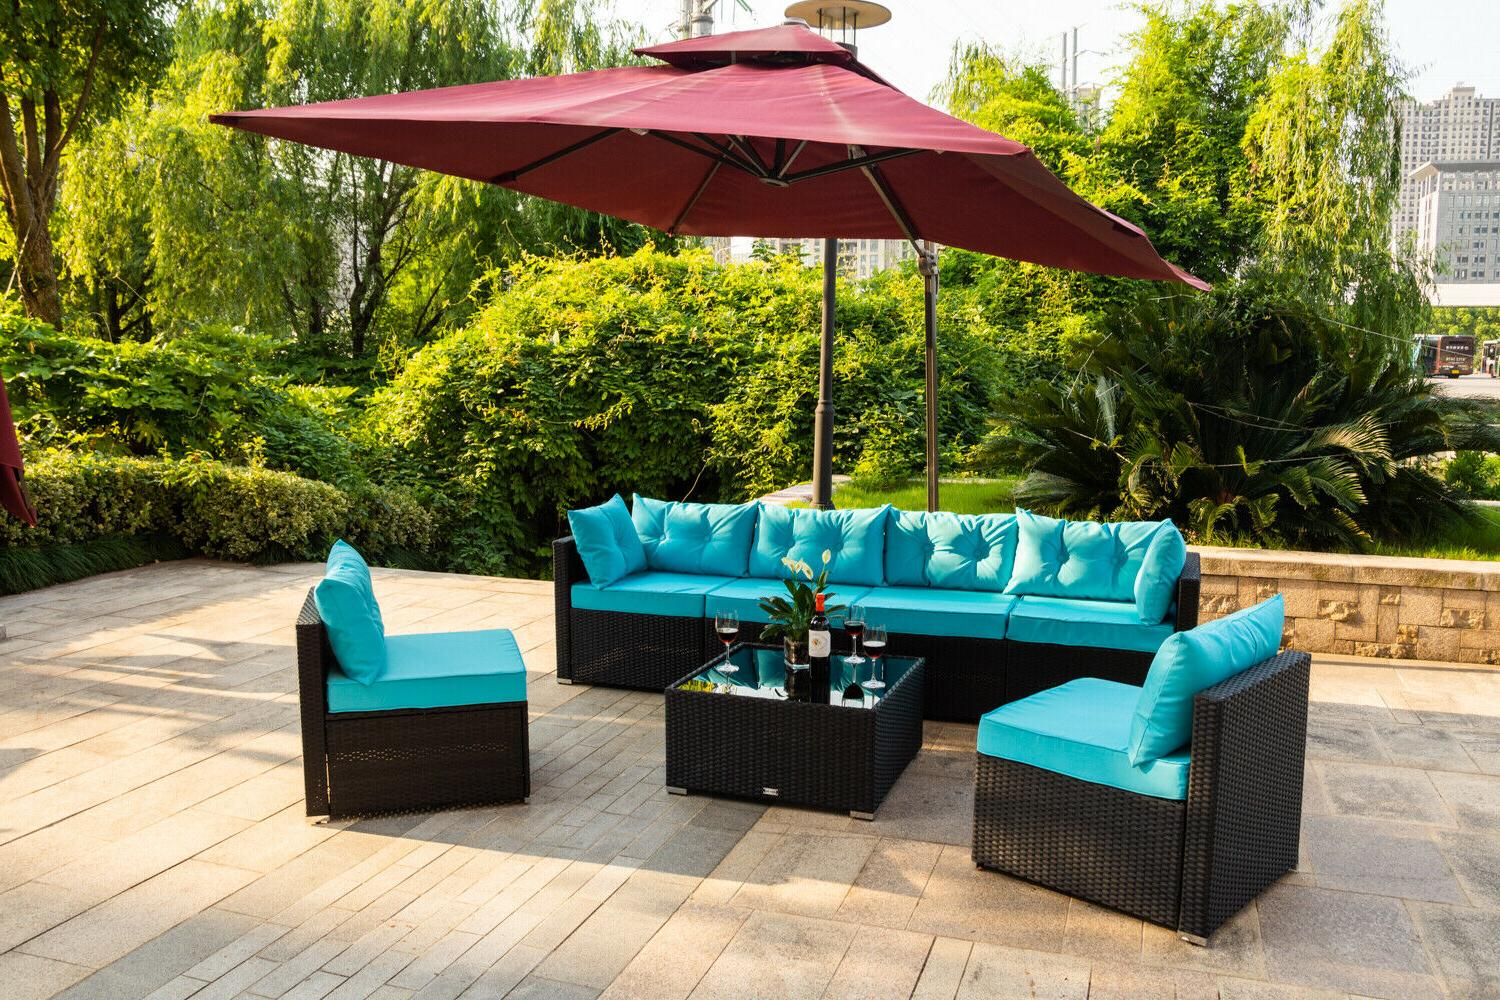 7 Outdoor Garden Furniture Sectional Sofa Set Rattan Blue